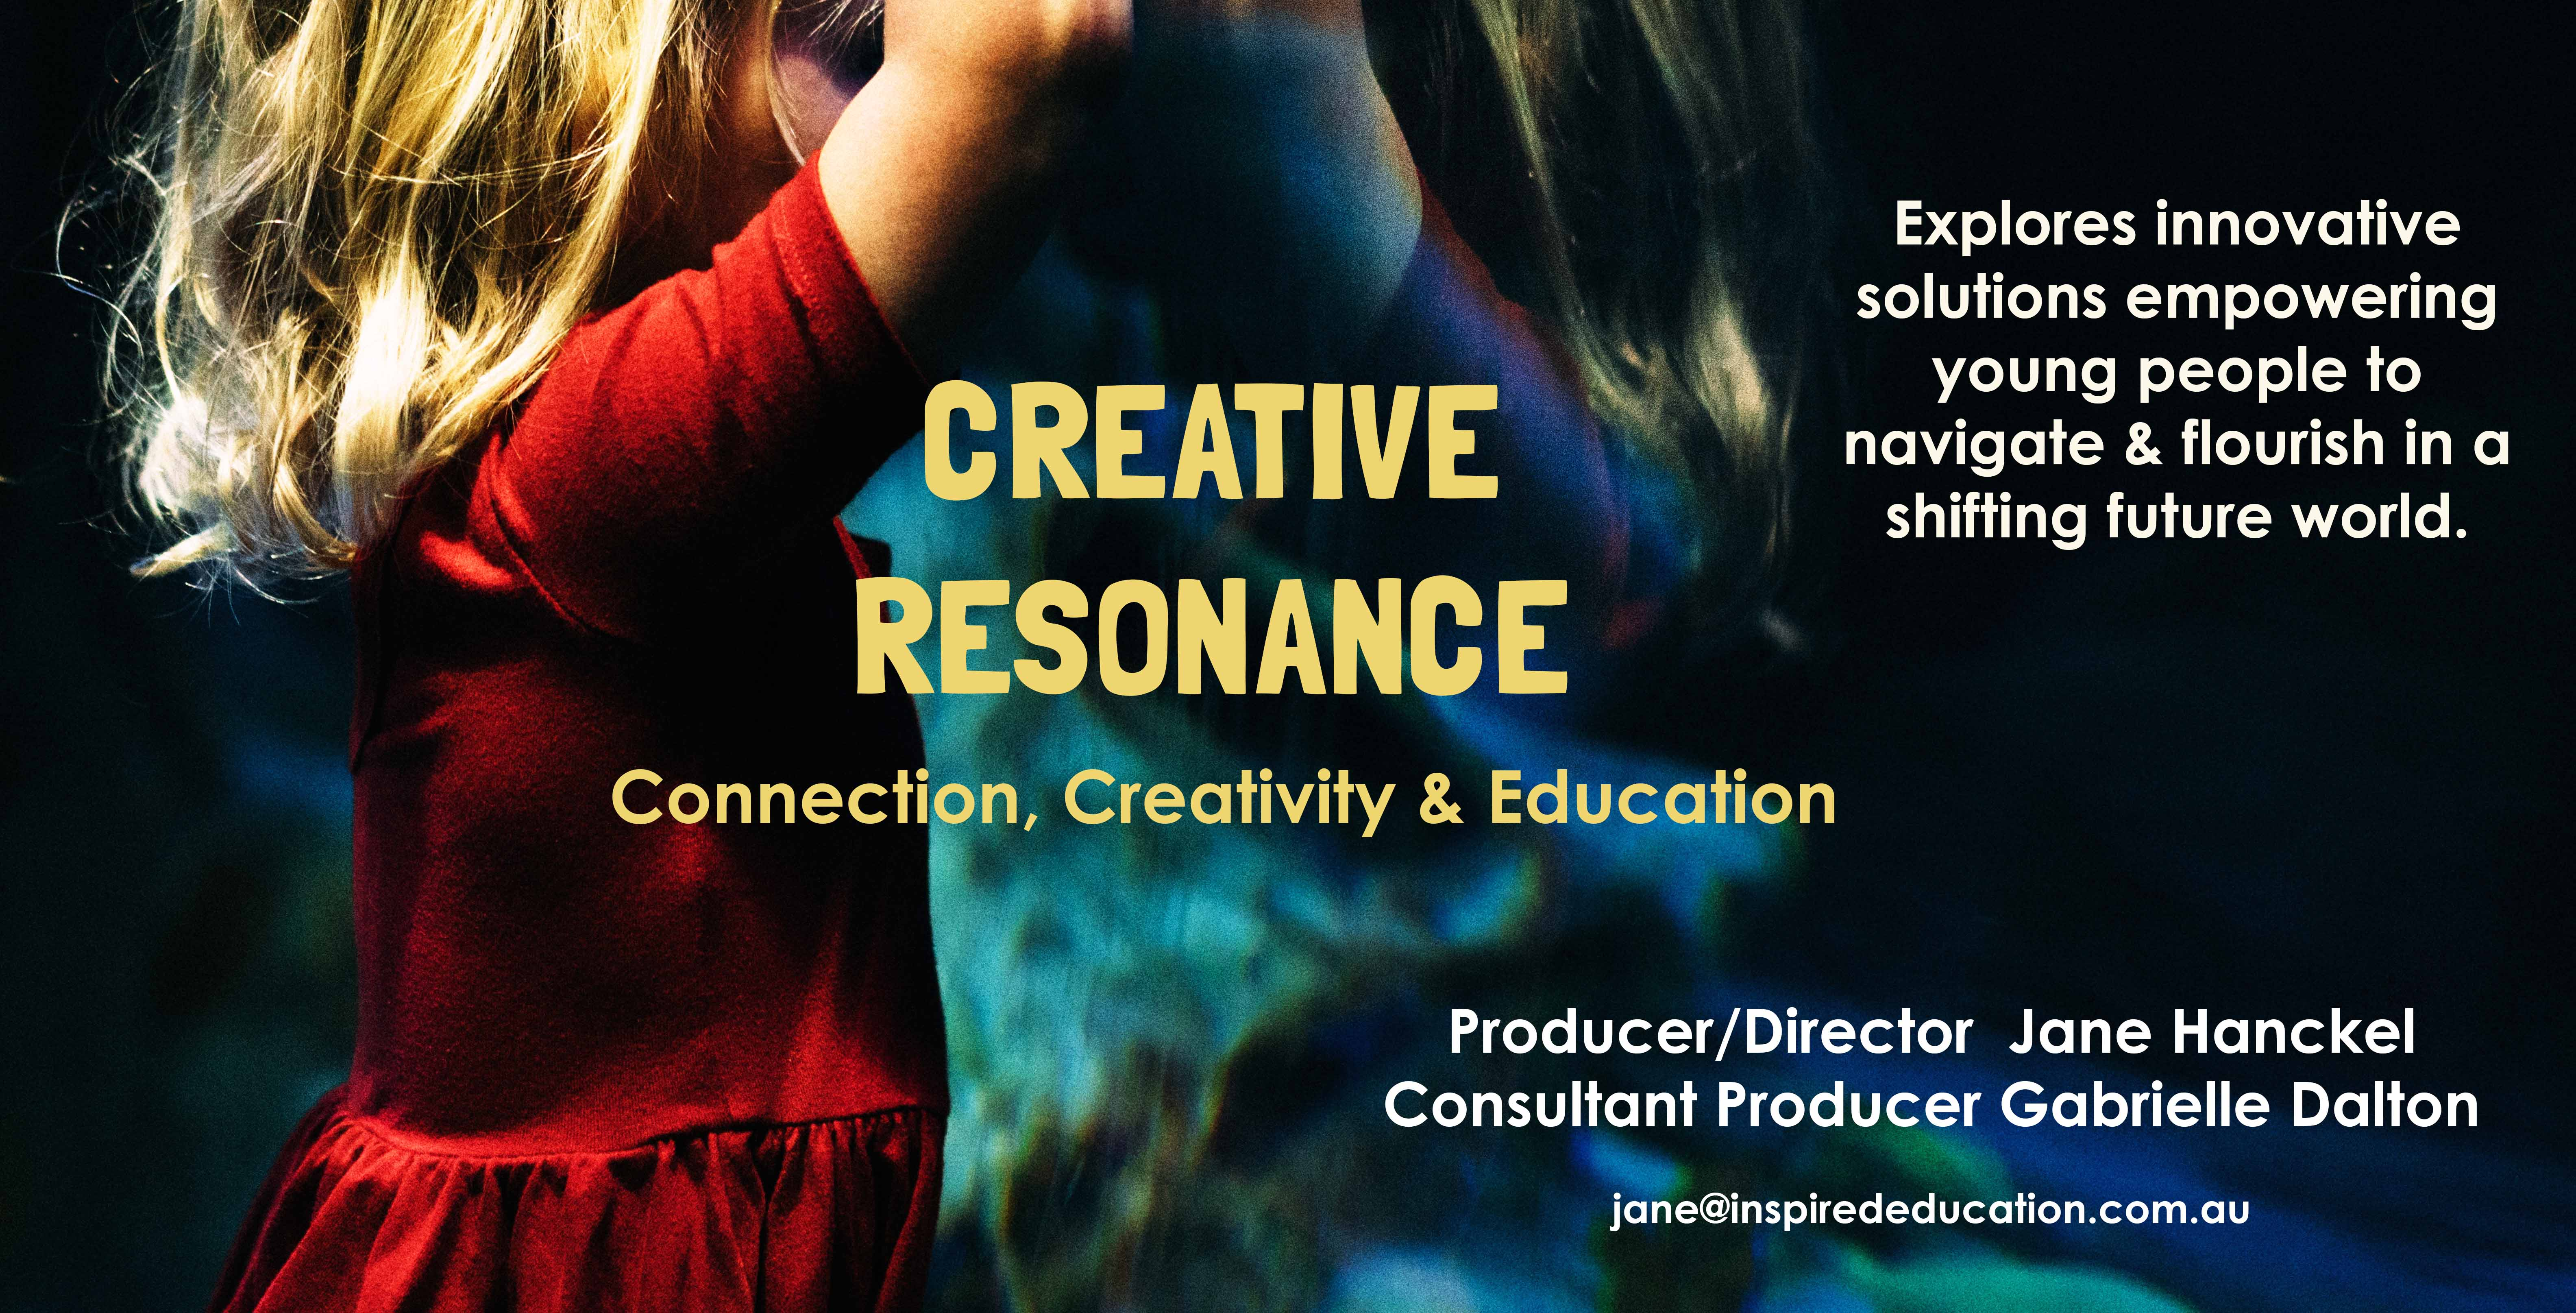 Creative Resonance - solutions empowering young people